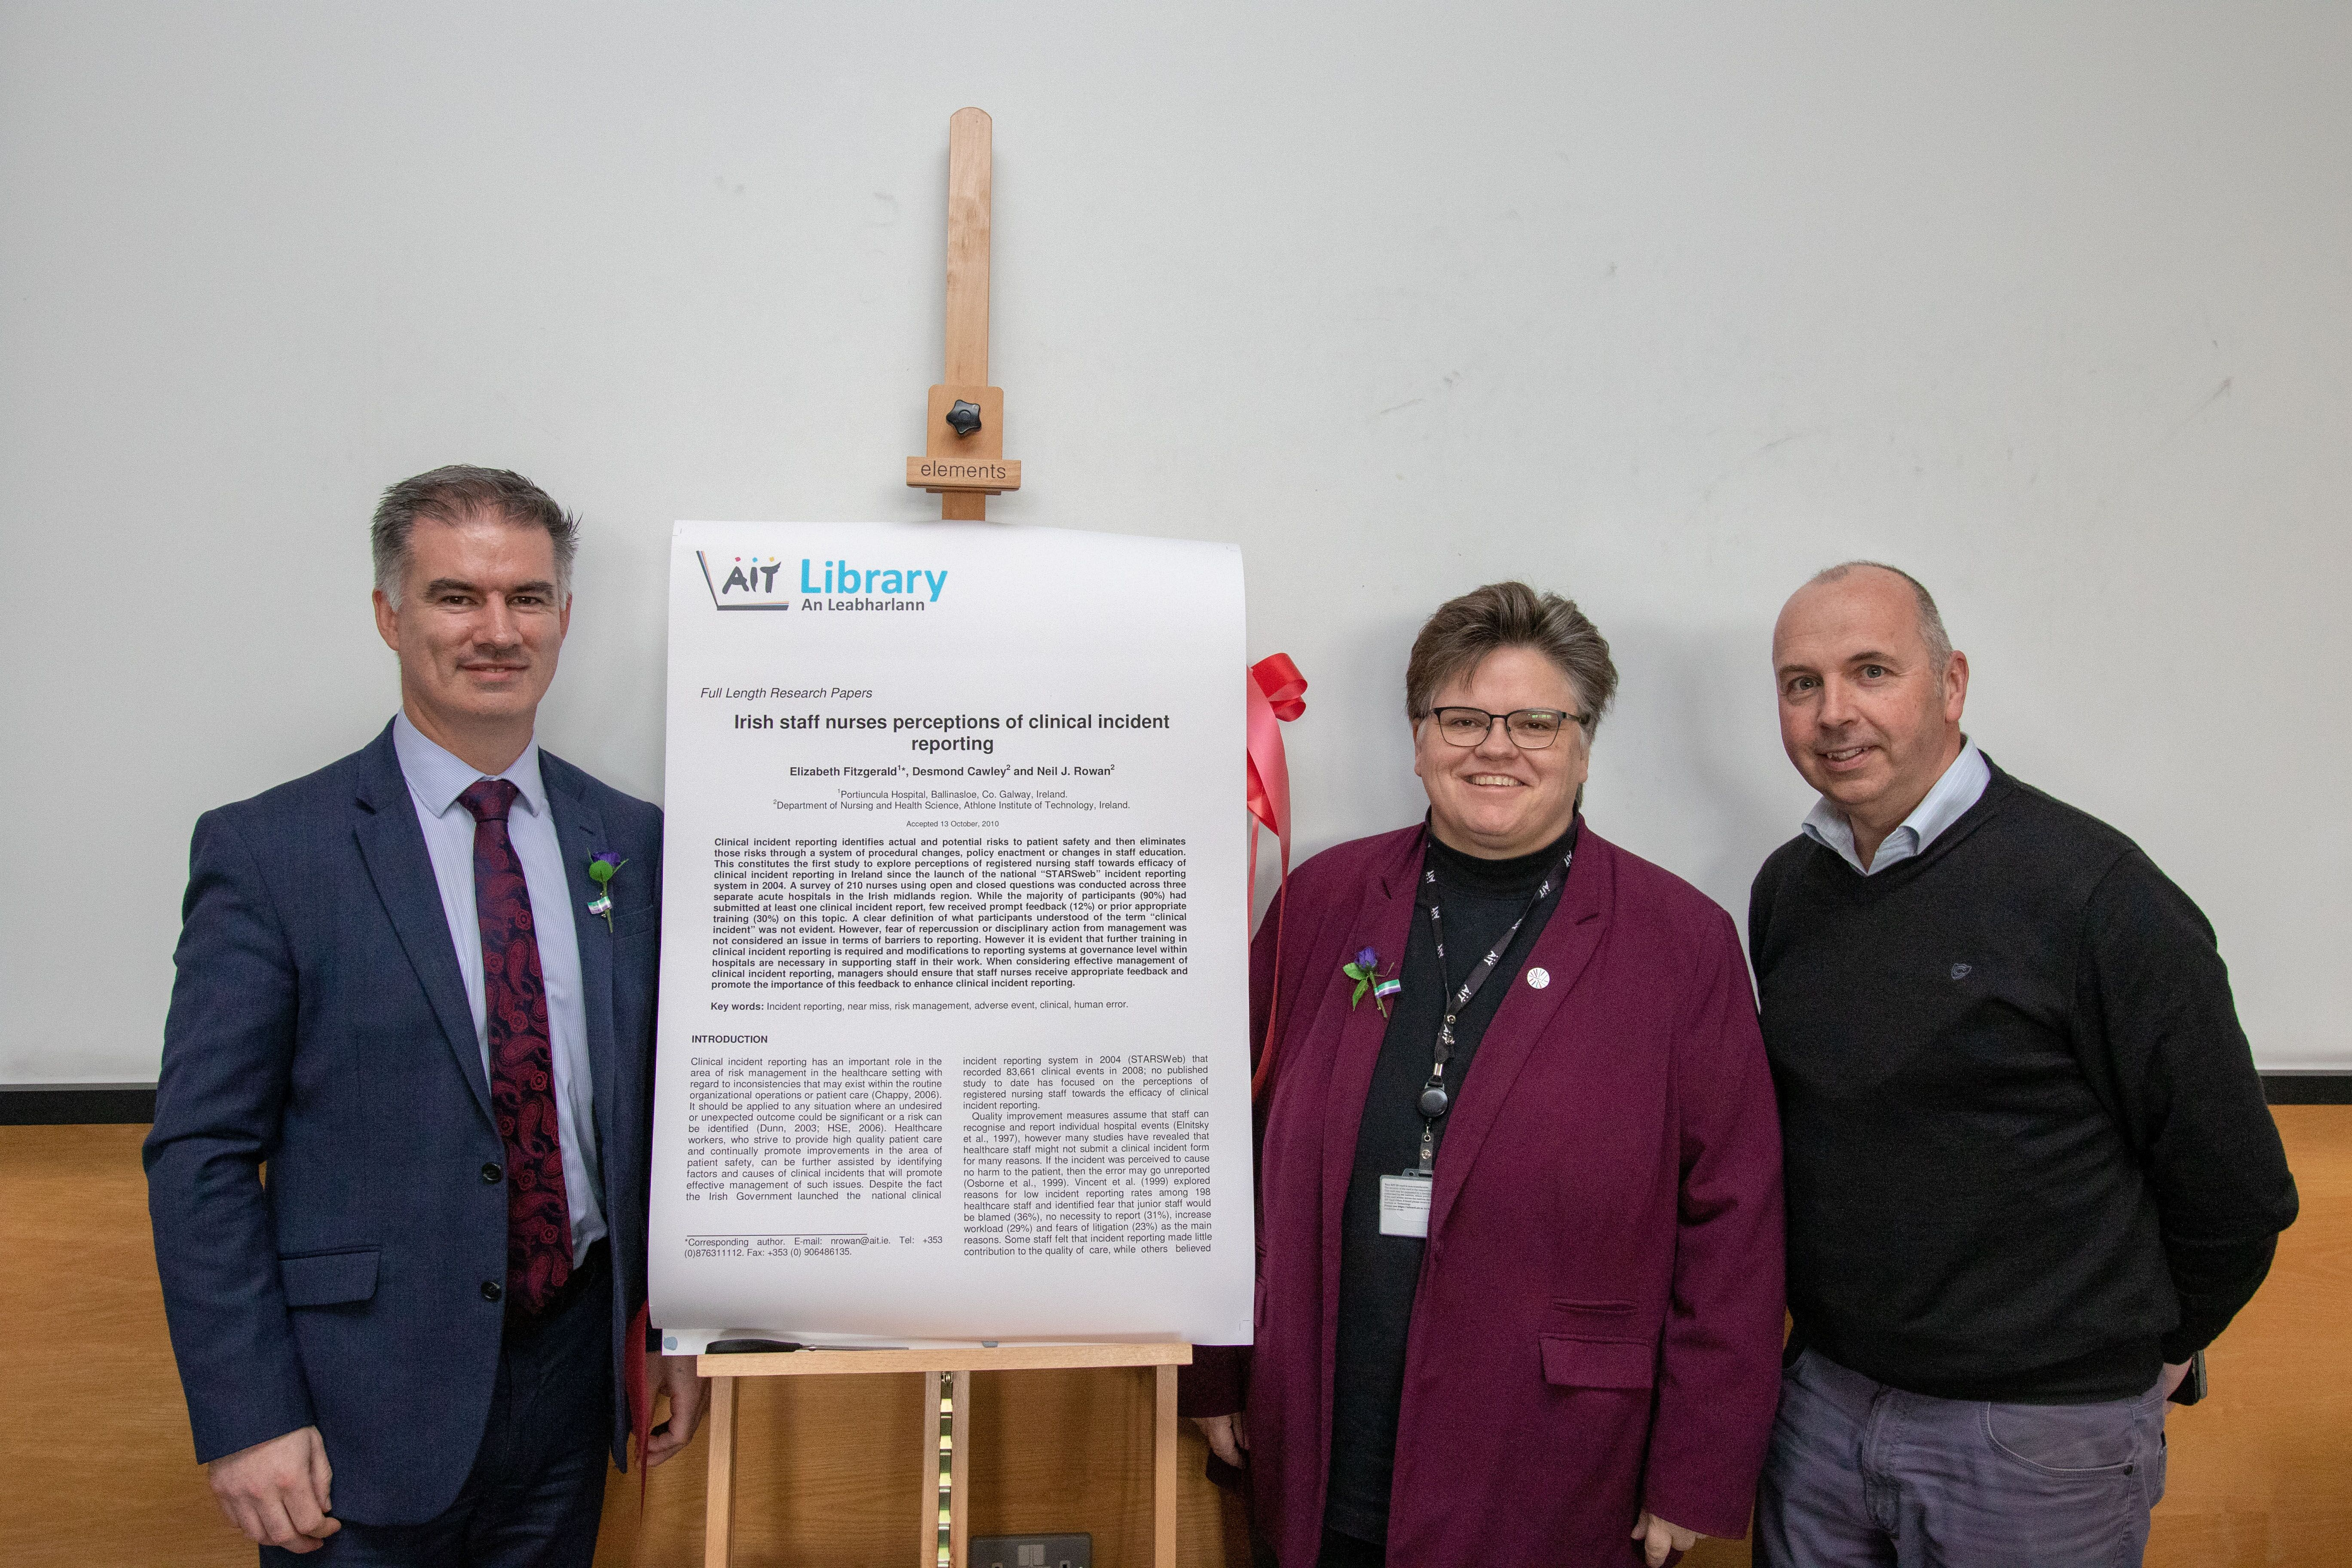 Dr Niall Seery, VP for Academic Affairs and Regisytry, pictured with Jane Burns, Institute Librarian, and Professor Neil Rowan, Director of the Bioscience Research Institute at Athlone Institute of Technology.